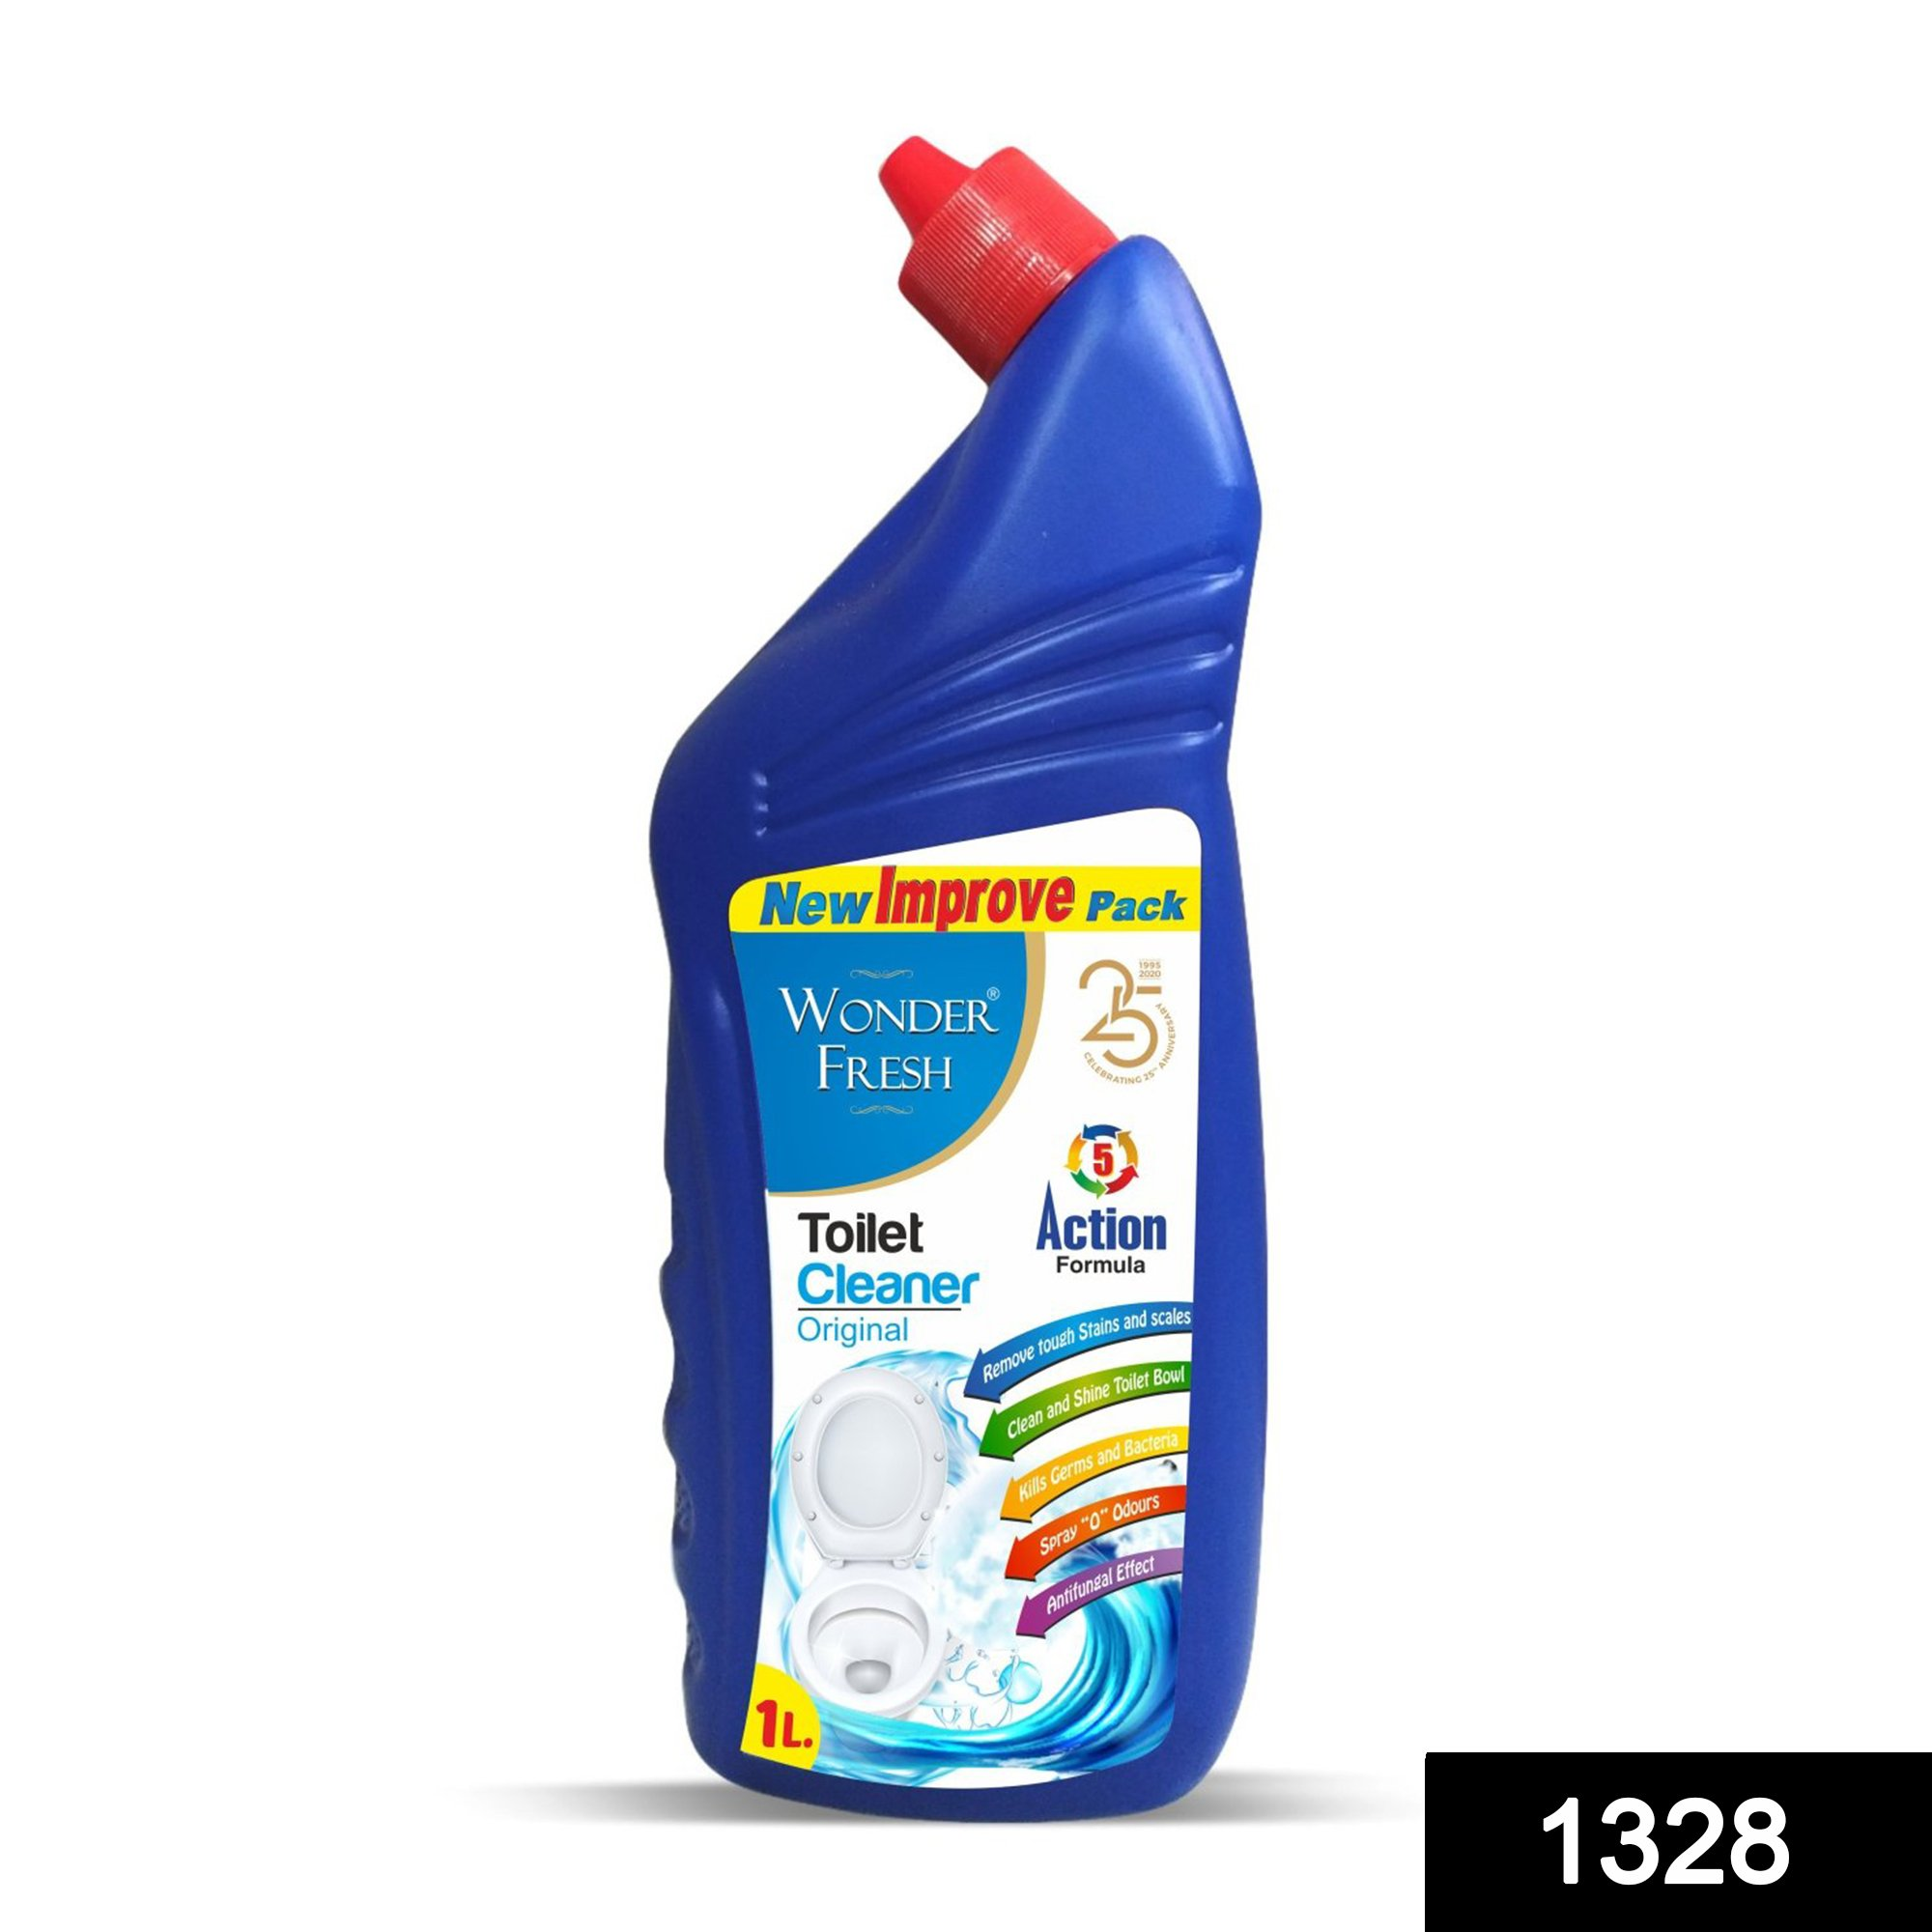 1328 Toilet Cleaner for Cleaning Toilet (1ltr) -